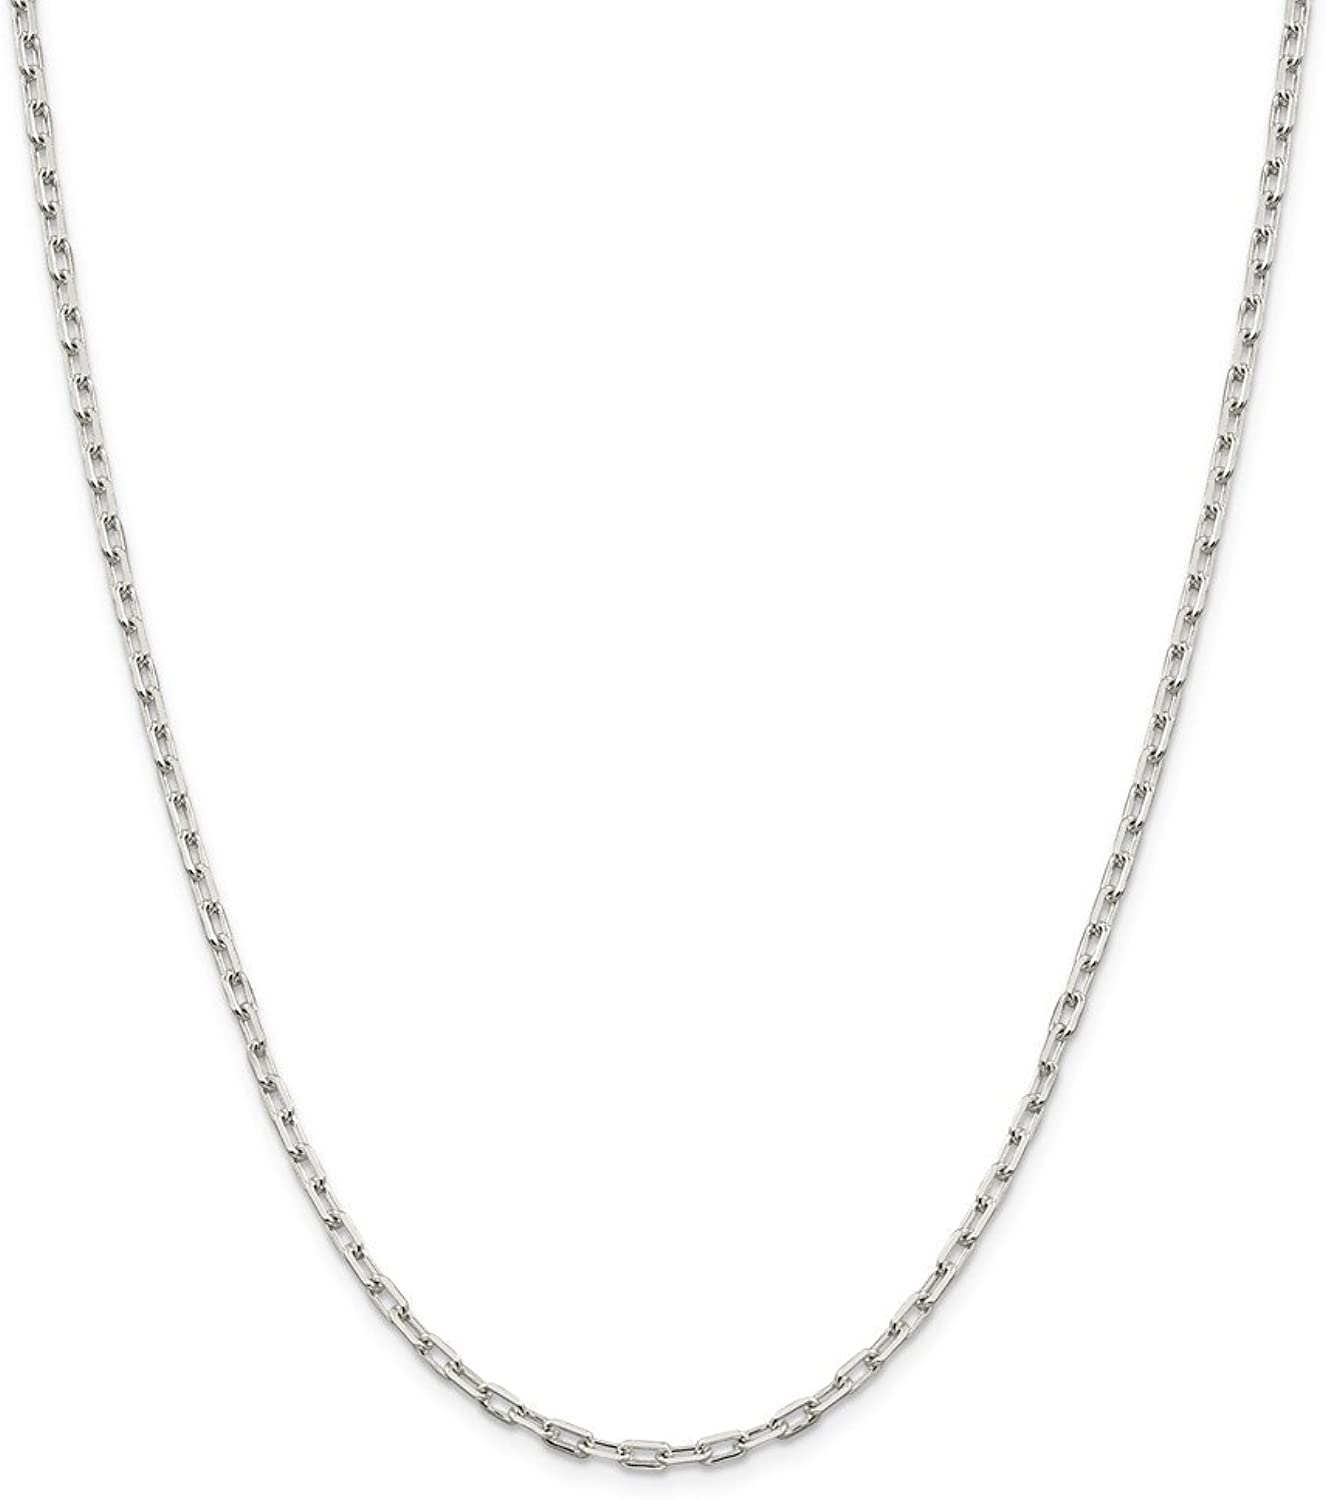 Beautiful Sterling silver 925 sterling Sterling Silver 2.75mm Fancy Link Chain